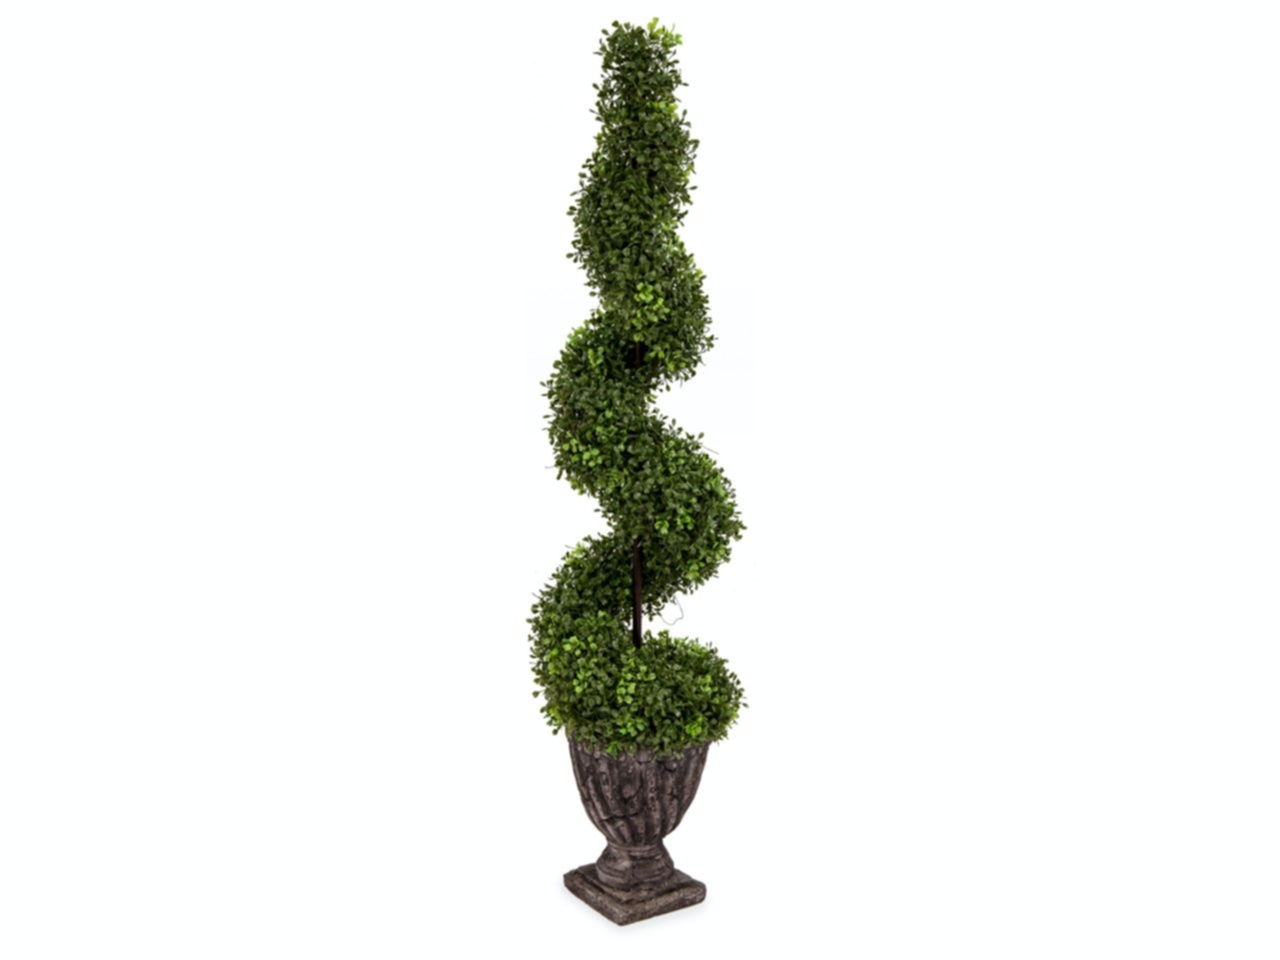 Buxus Pyramid Height 4 feet. Artificial Topiary